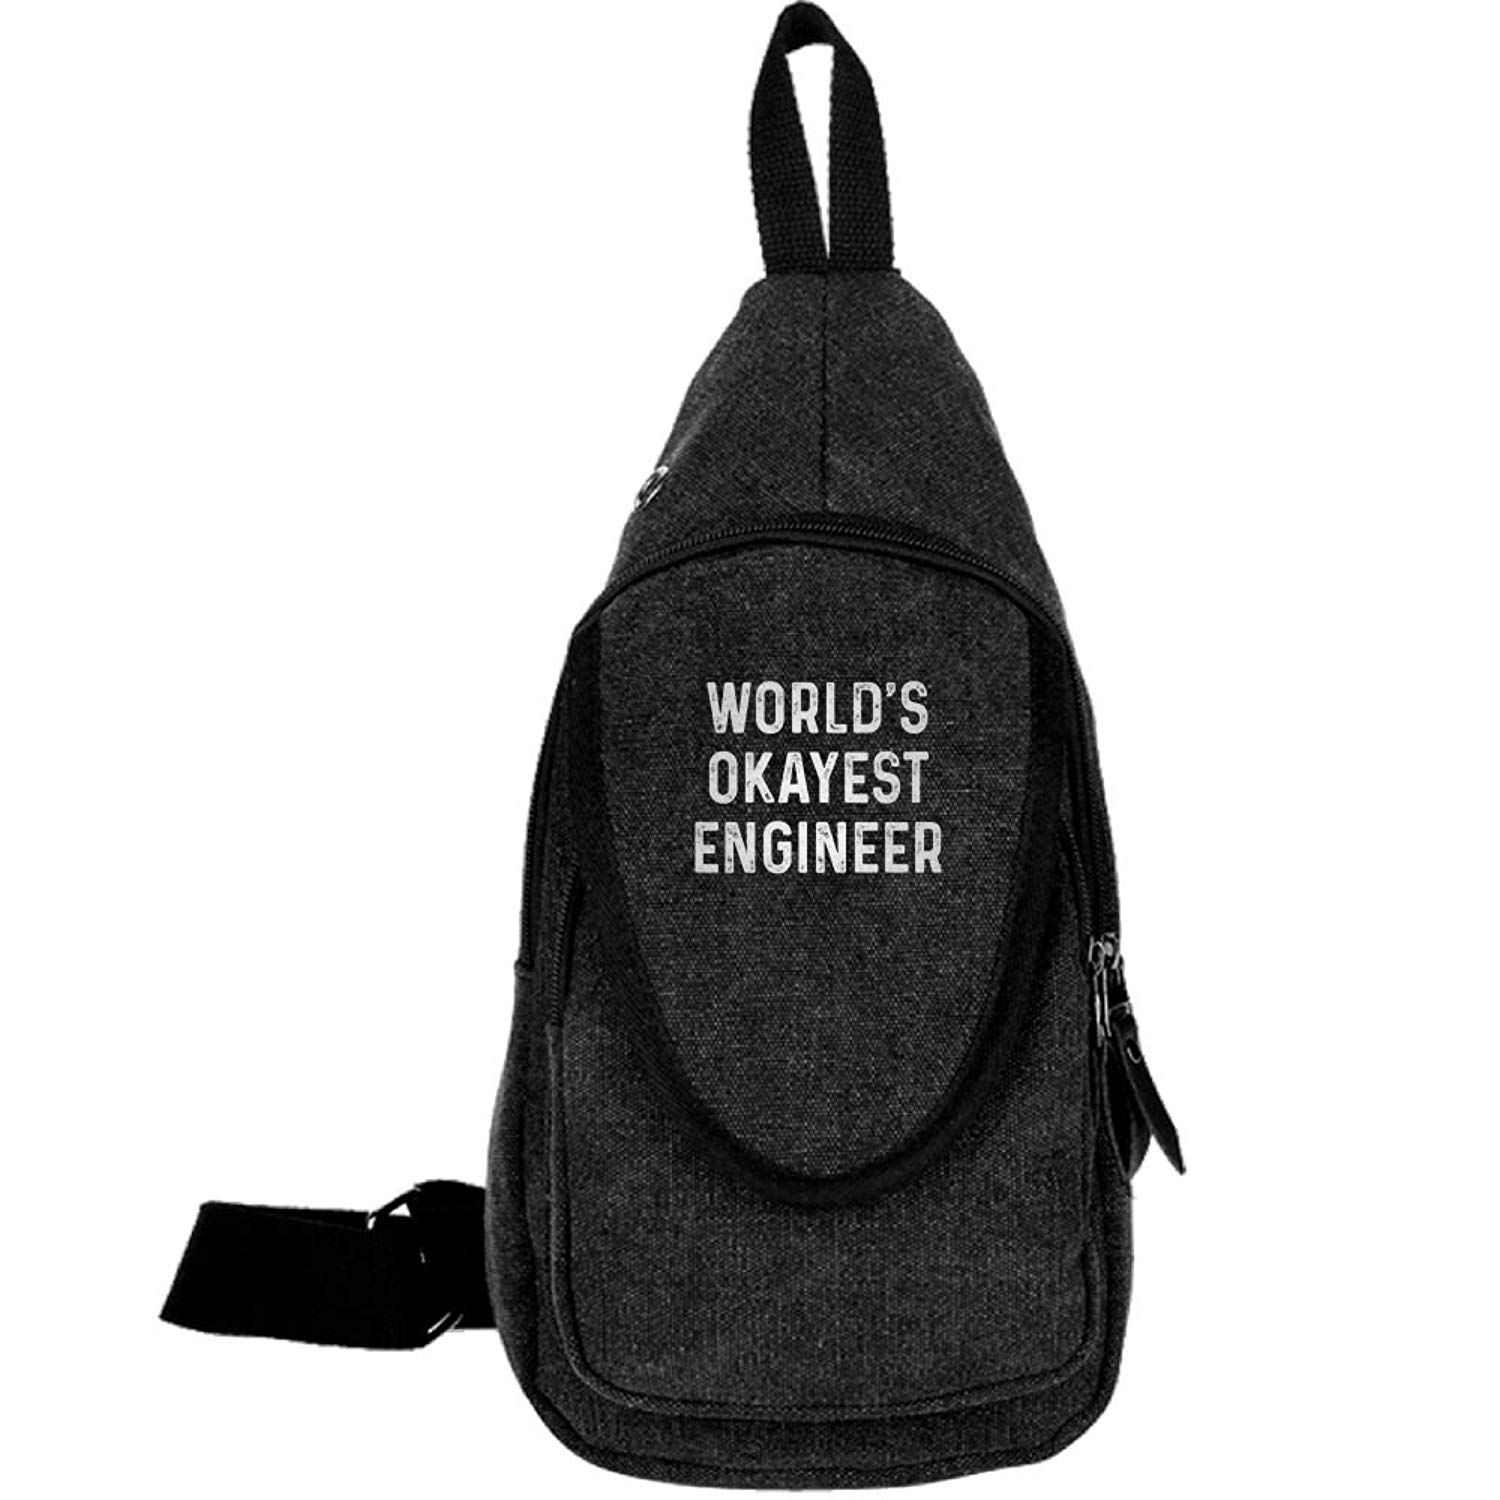 World's Okayest Engineer Fashion Men's Bosom Bag Cross Body New Style Men Canvas Chest Bags